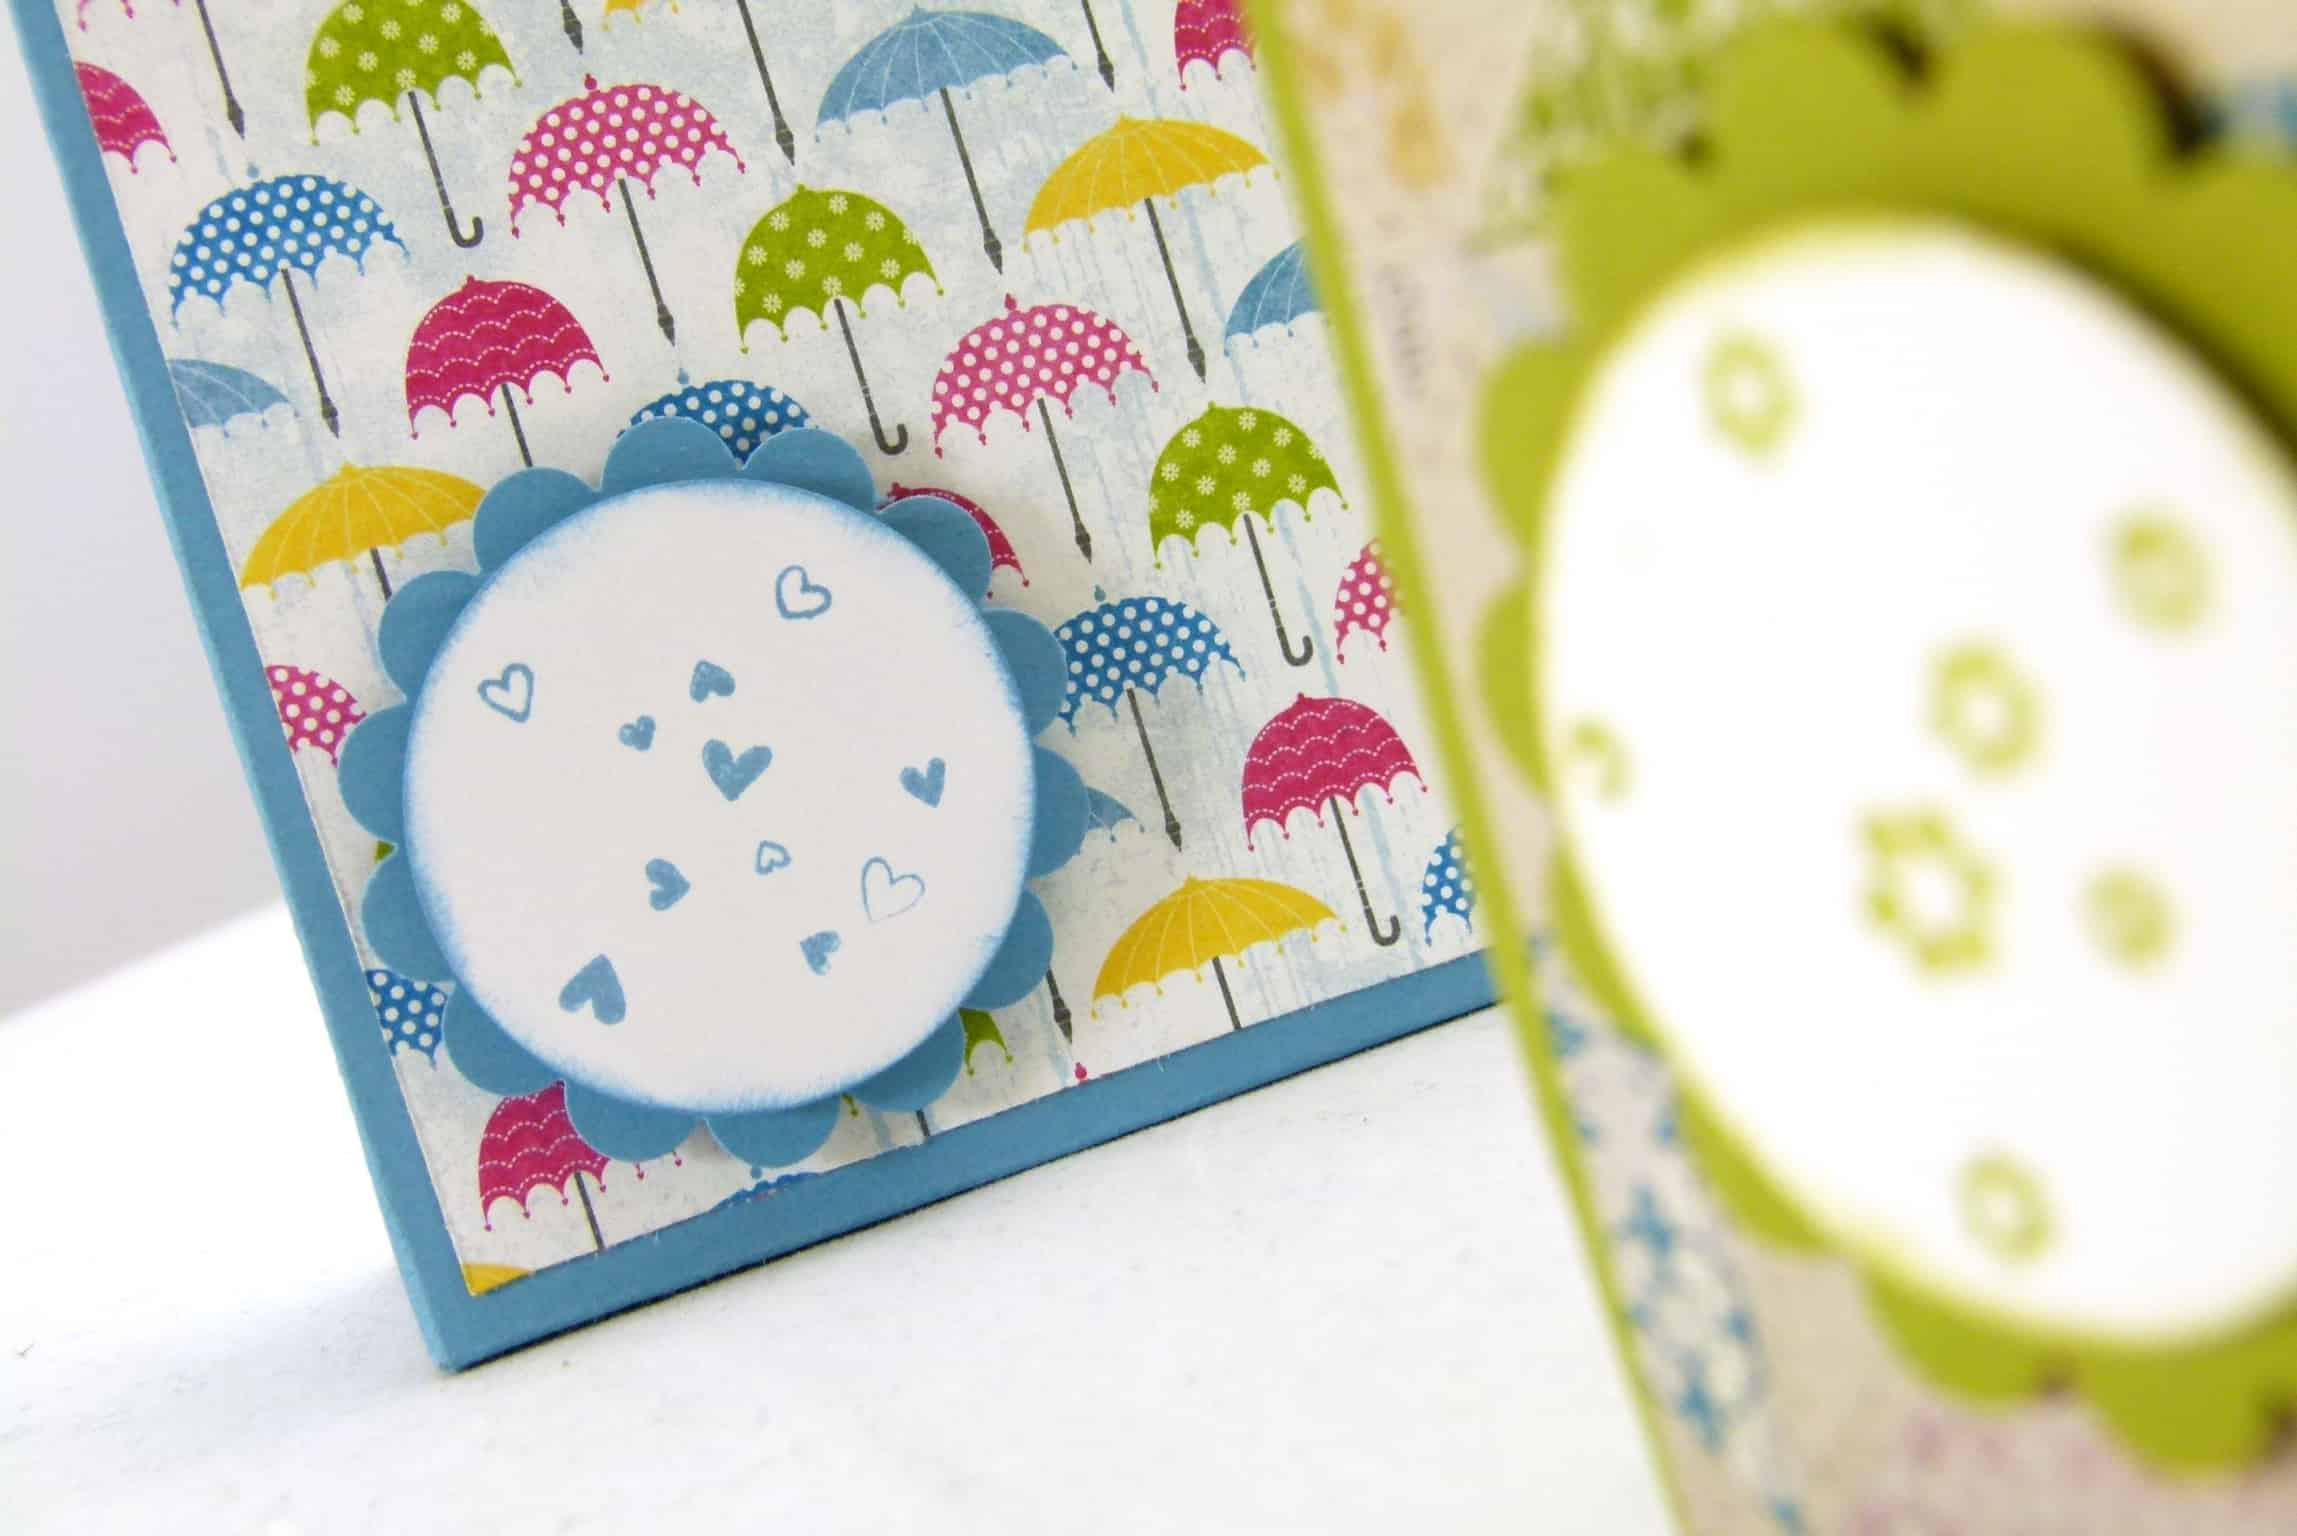 Stampin up one piece of adhesive treat gift box 3